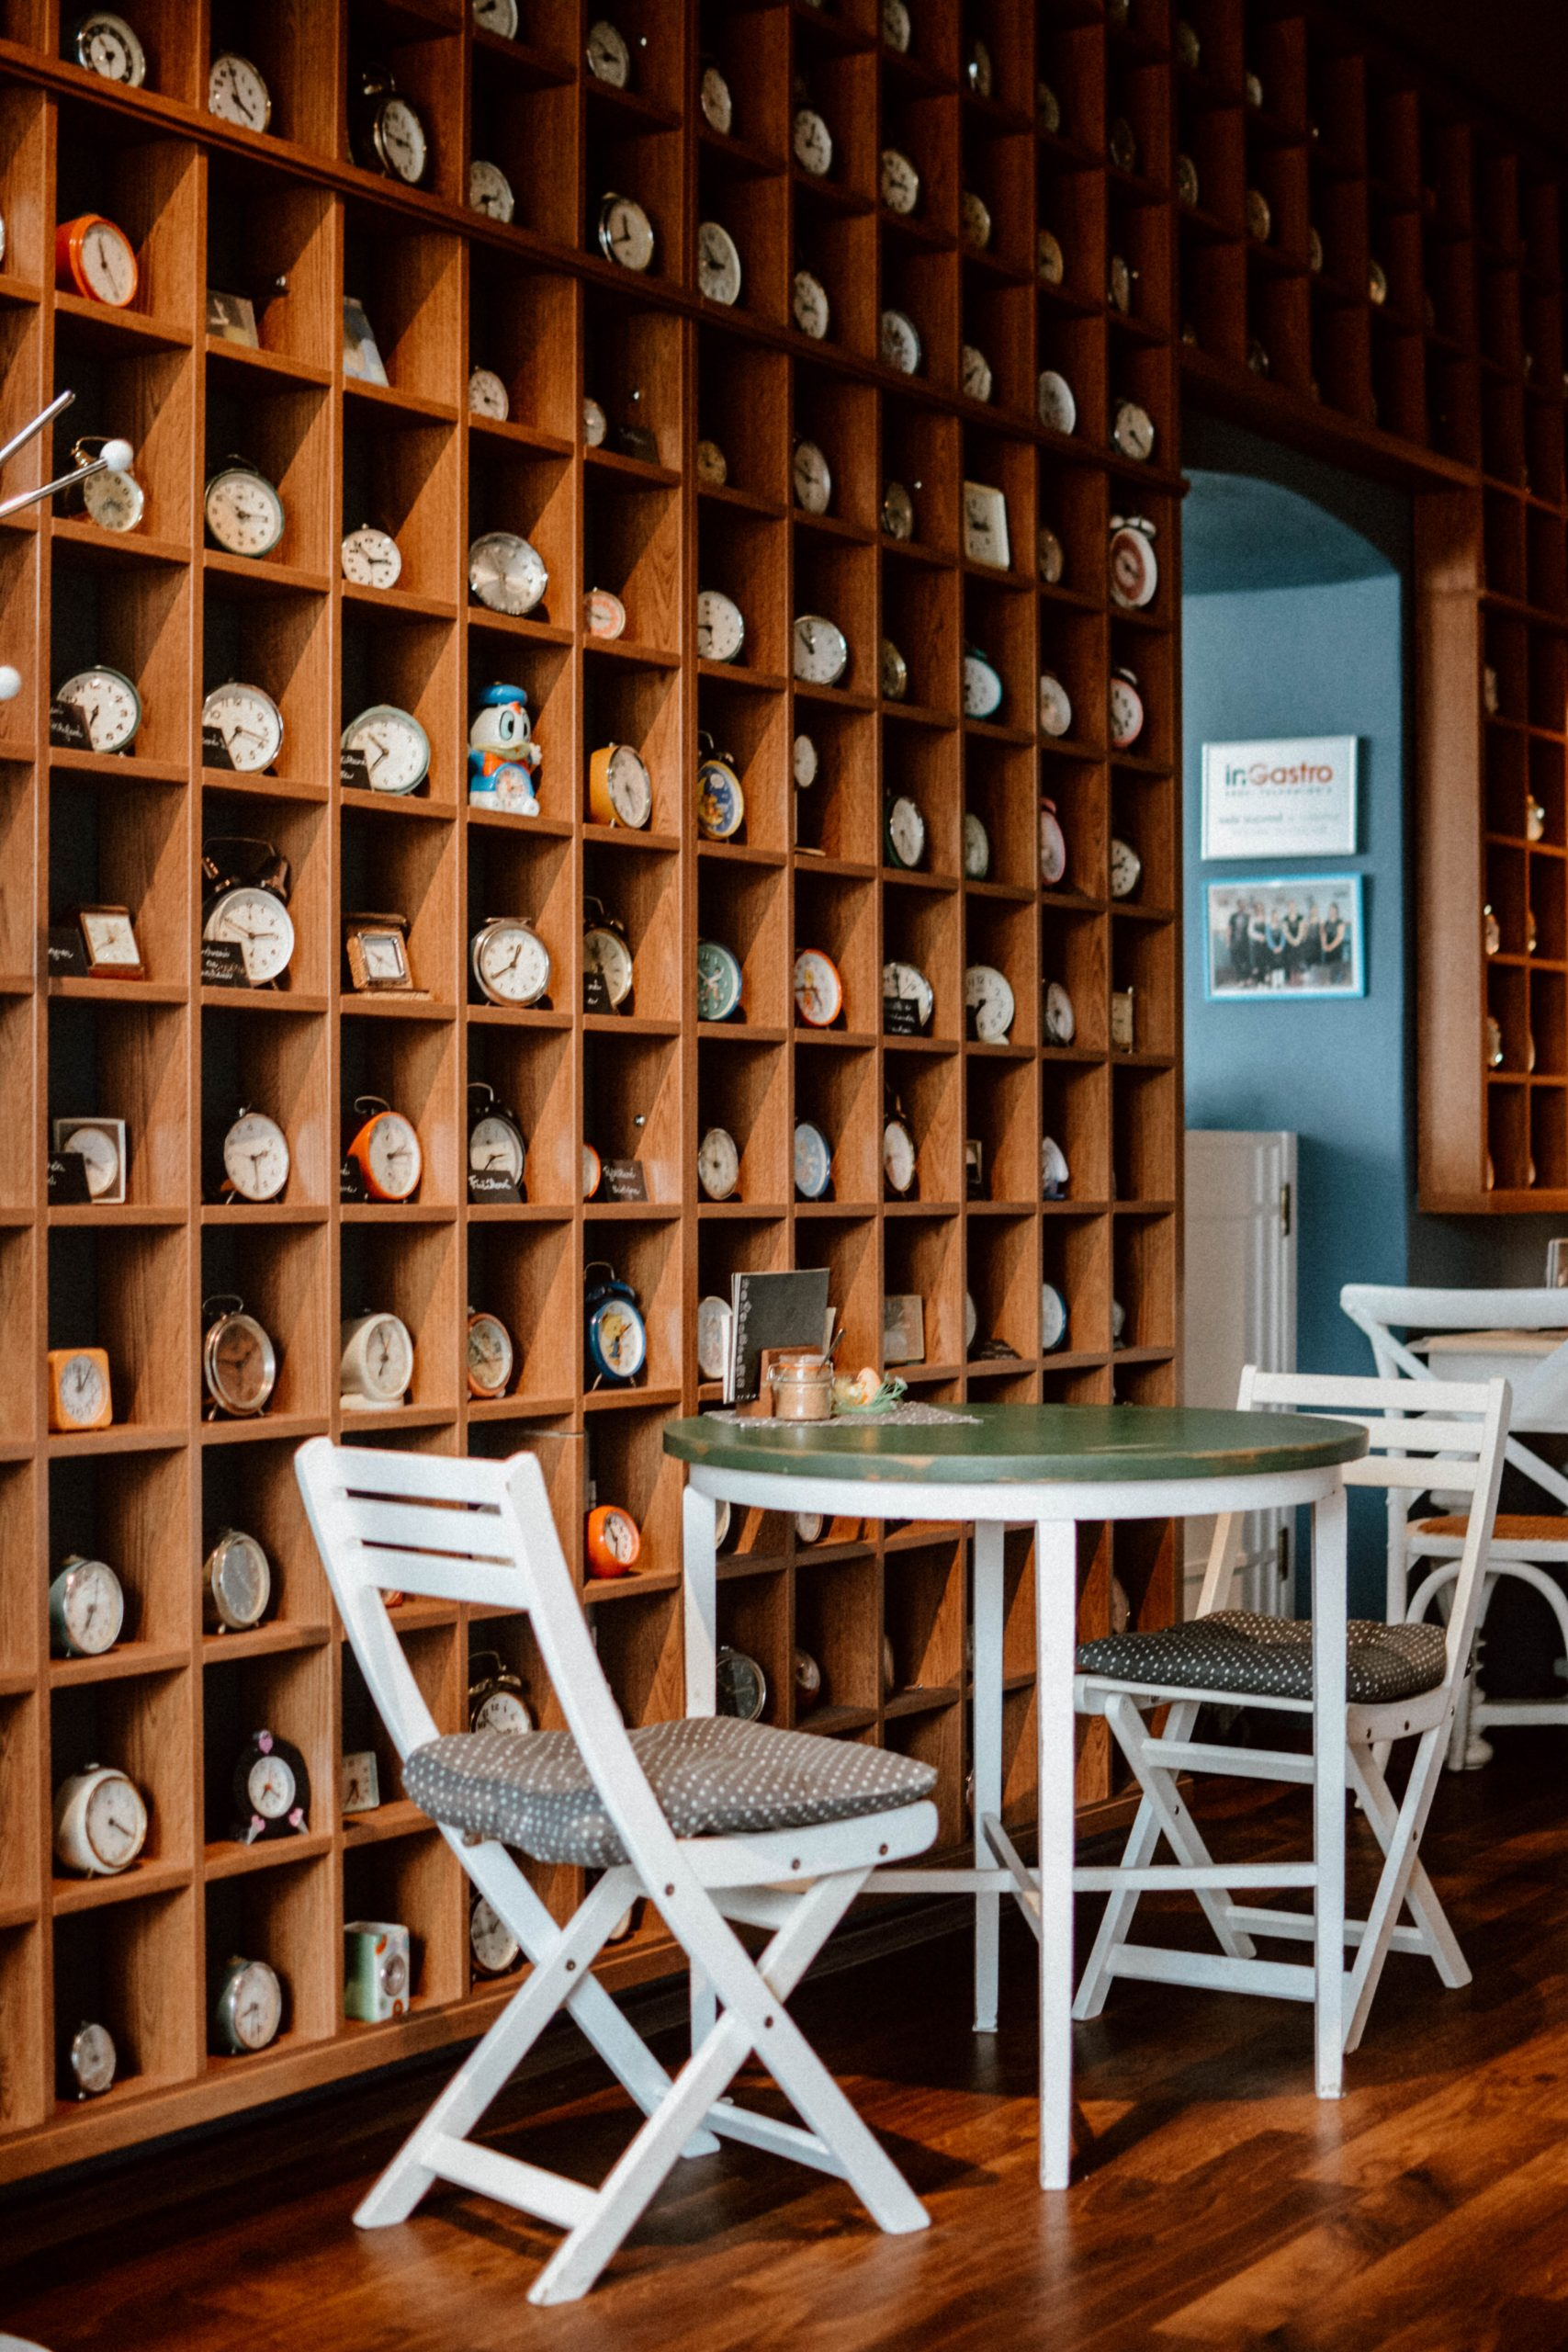 Dining out: How to choose the best places